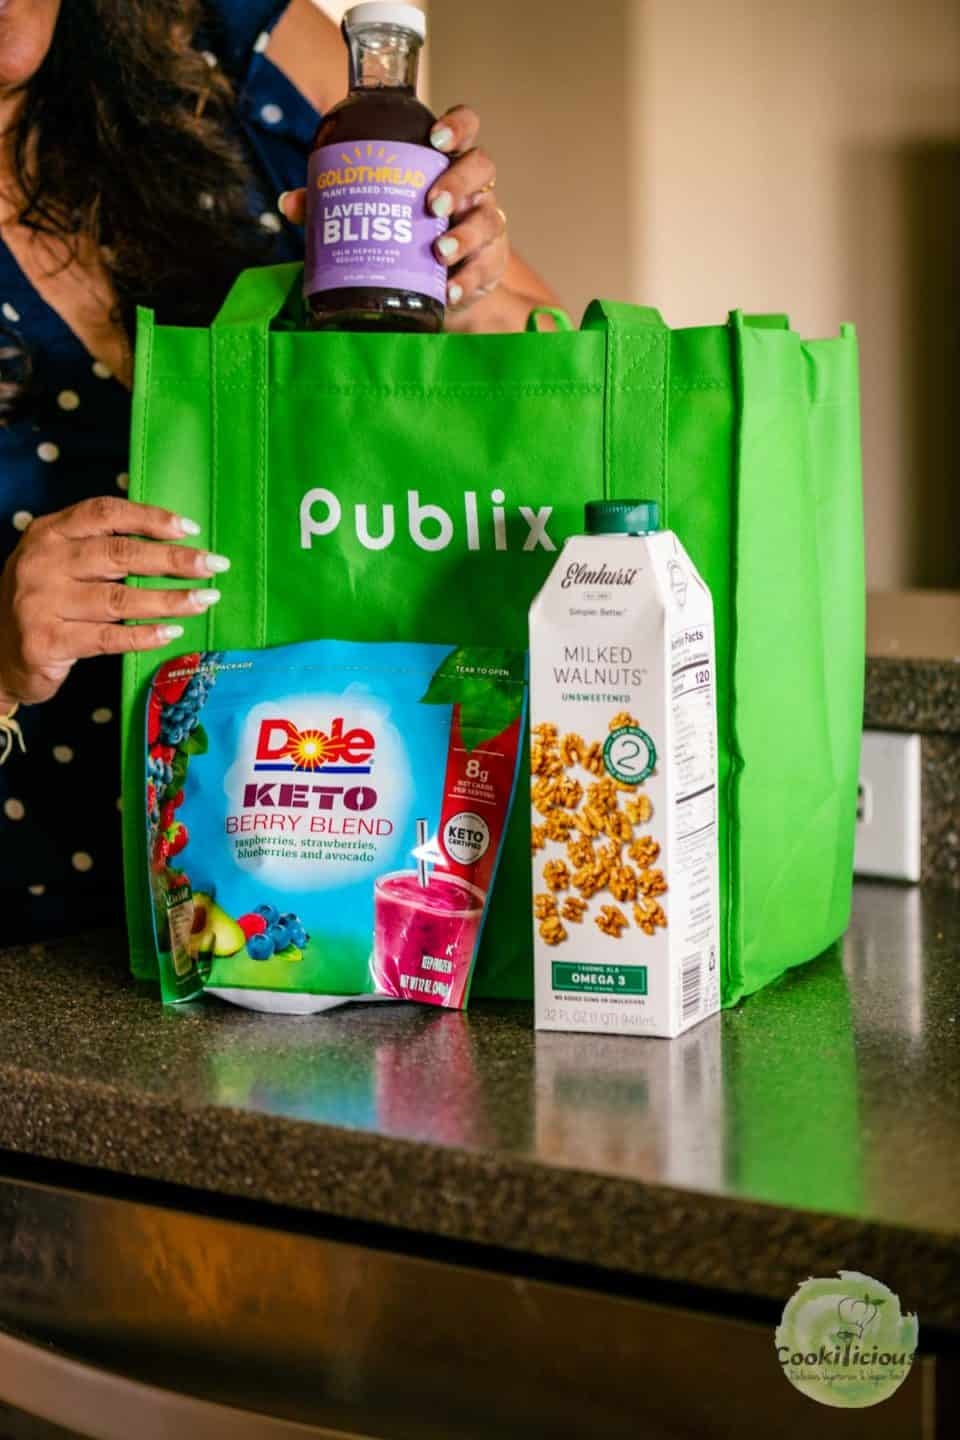 A lady removing grocery items from Publix shopping bag